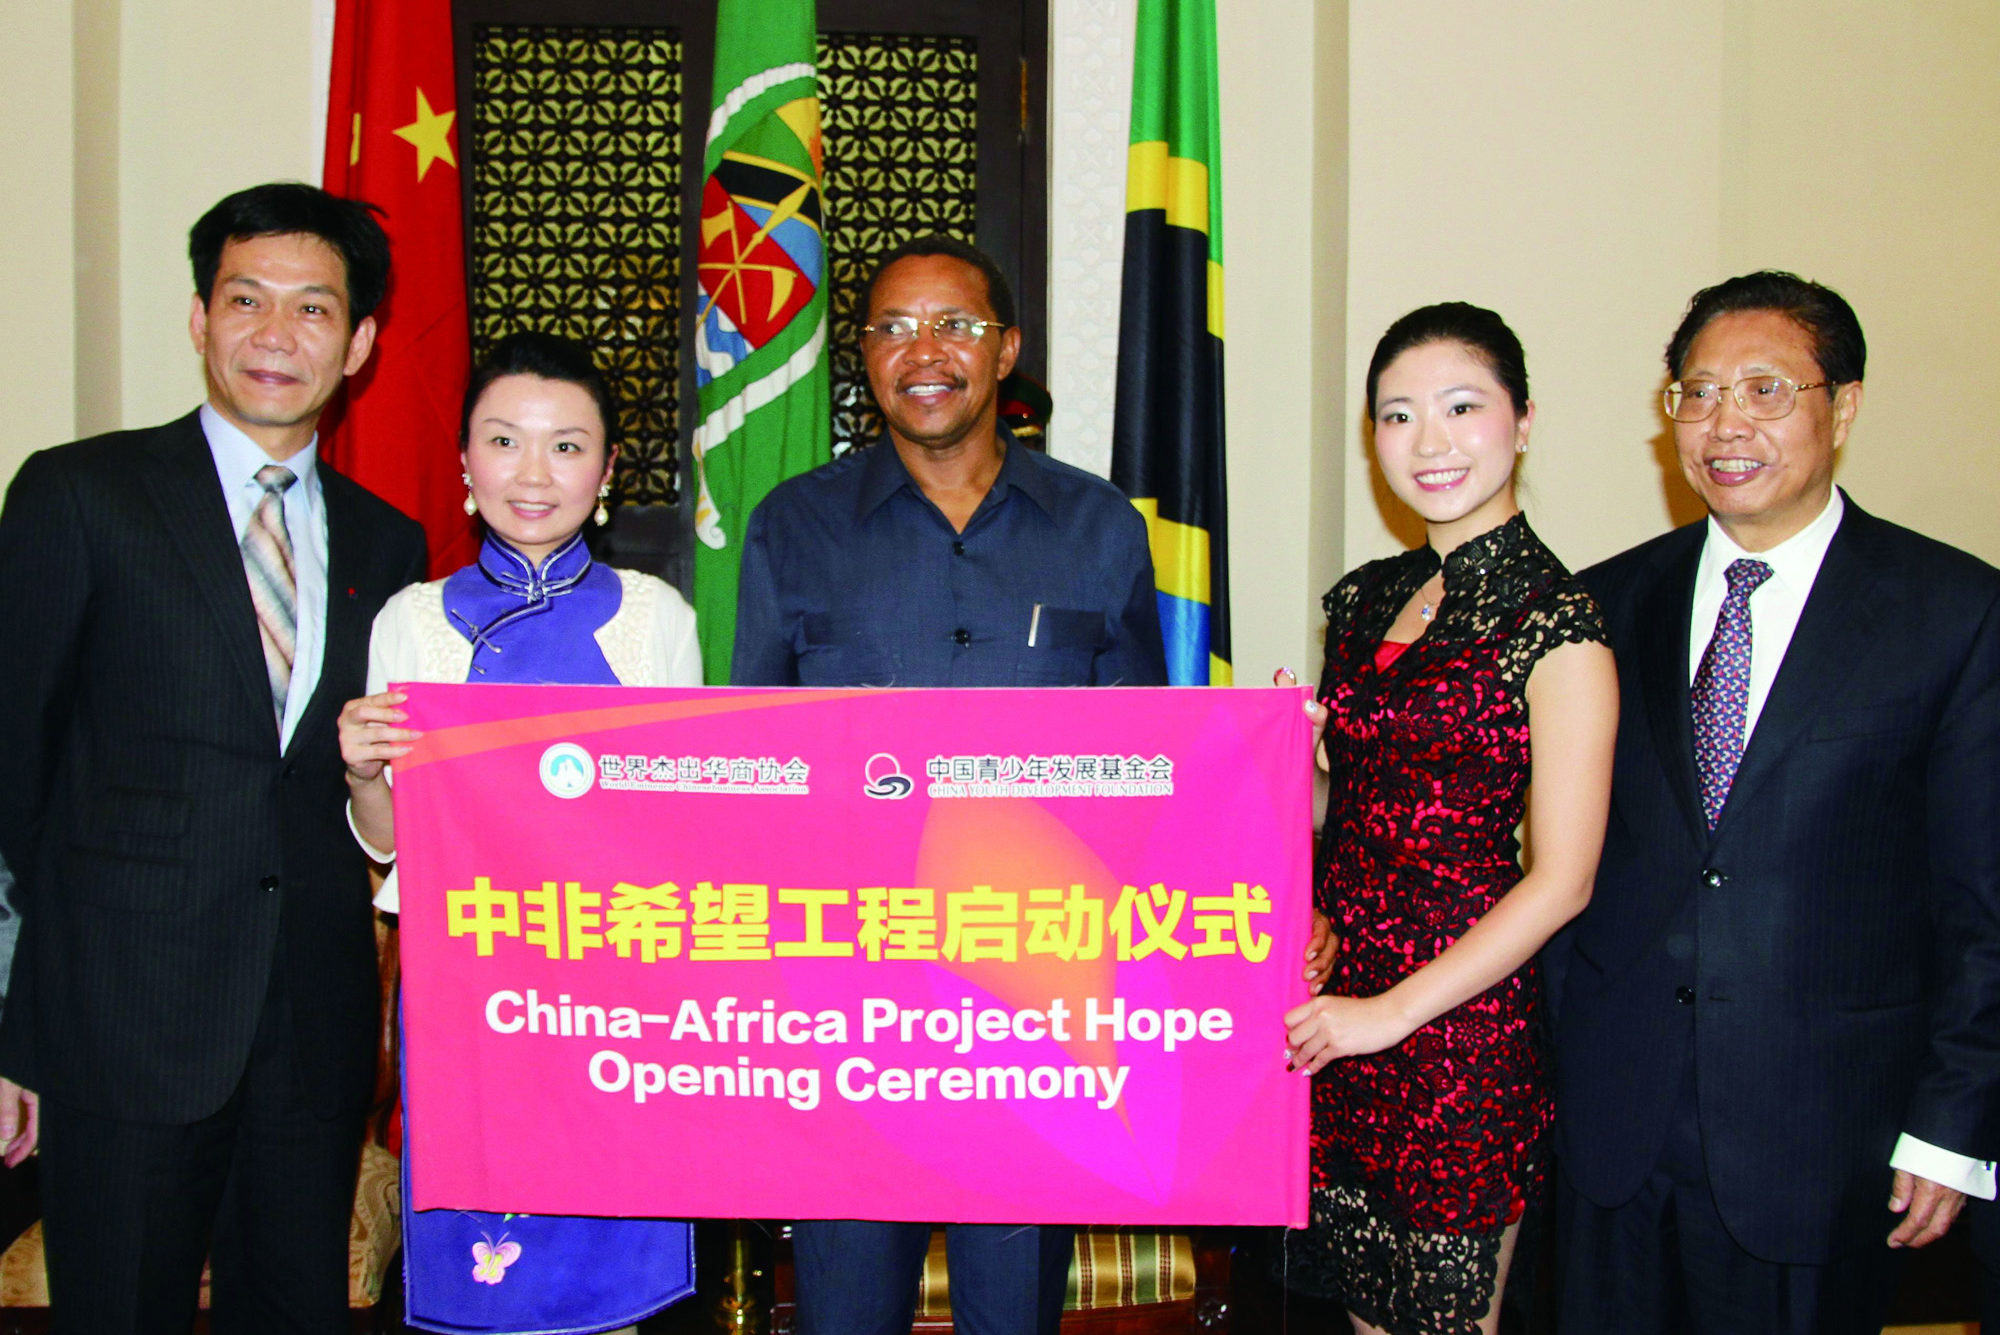 2011, Tanzanian then-President Kikwete and Chinese former Deputy Foreign Affairs Minister Ji attended the opening ceremony of ToJoy Hope Schools